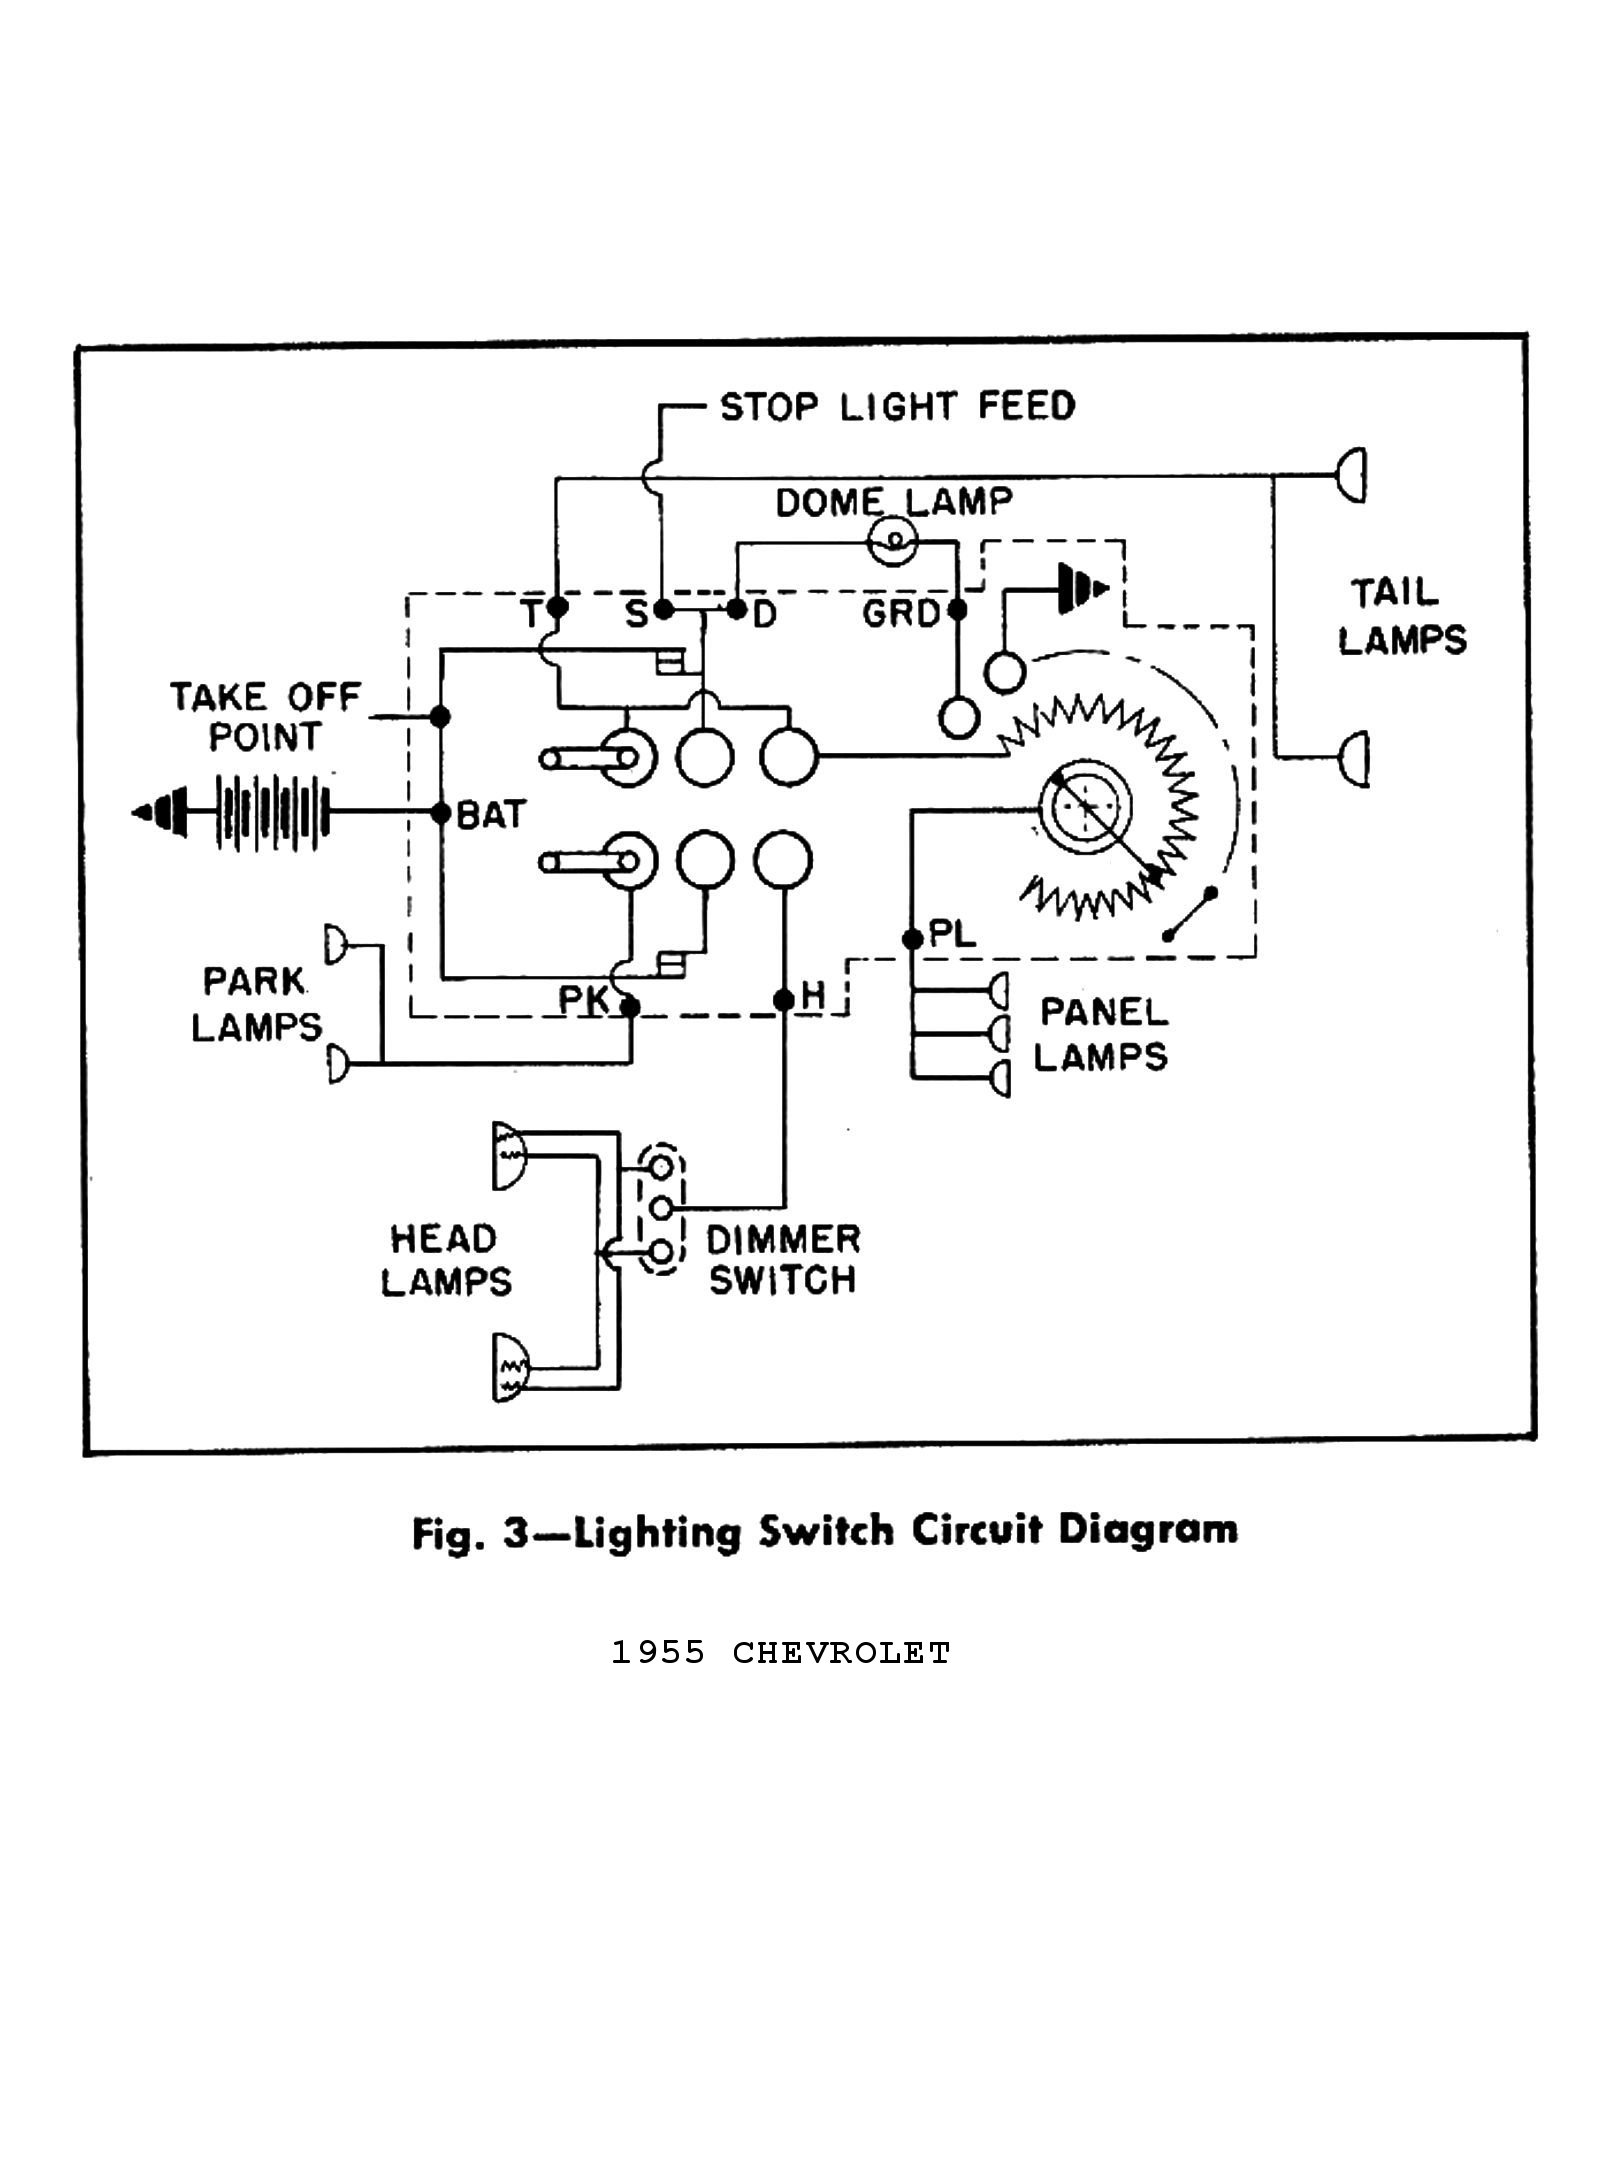 hight resolution of ford light switch wiring diagram detailed wiring diagram auto headlight wiring diagram 1941 ford headlight switch wiring diagram